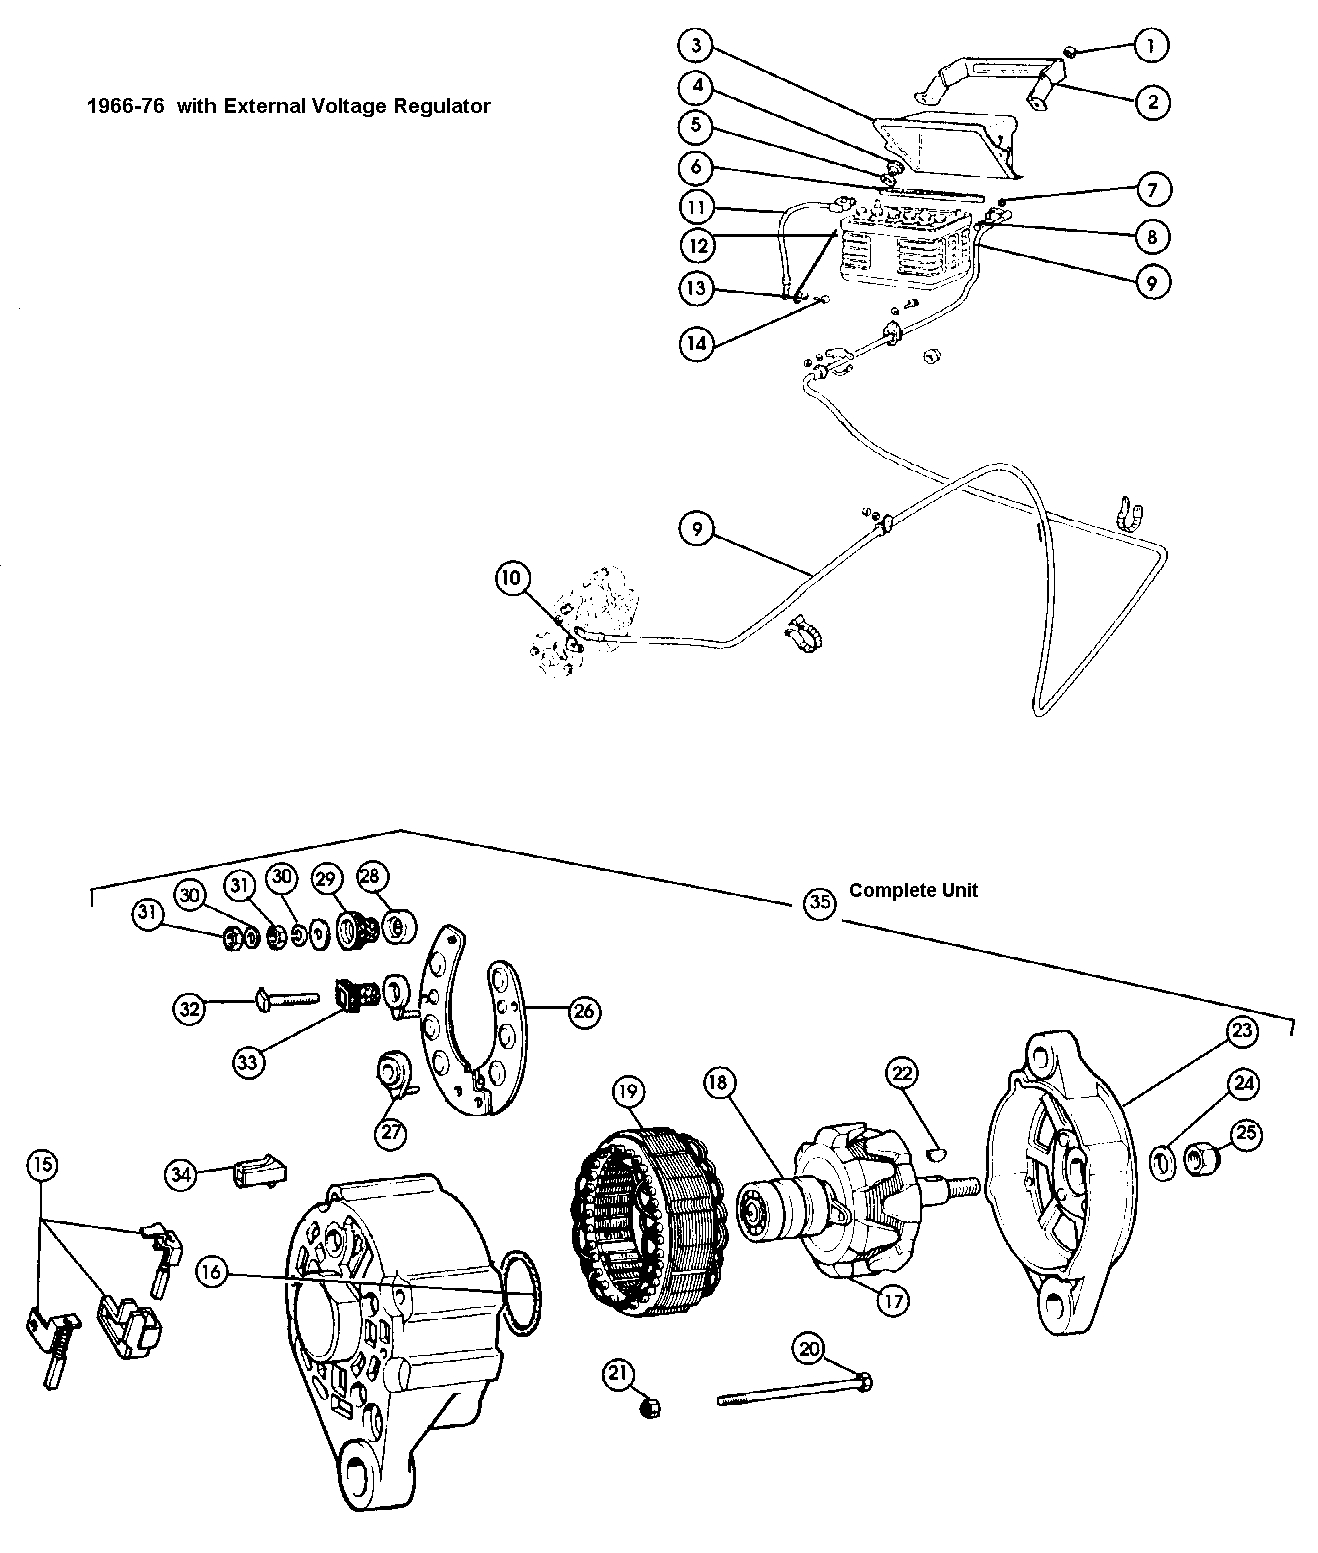 fiat 124 alternator battery cables fiat 500 and classic abarth Valeo Alternator Wiring Diagram alternator battery cables